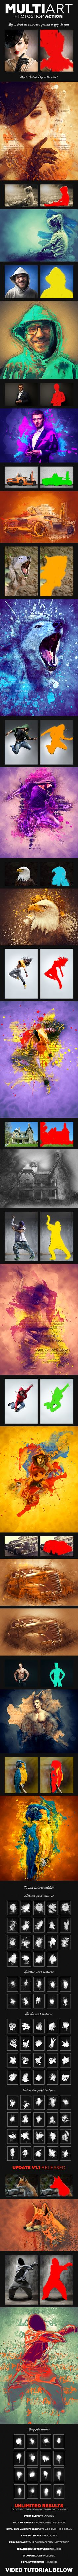 MultiArt Photoshop Action - Photo Effects Actions